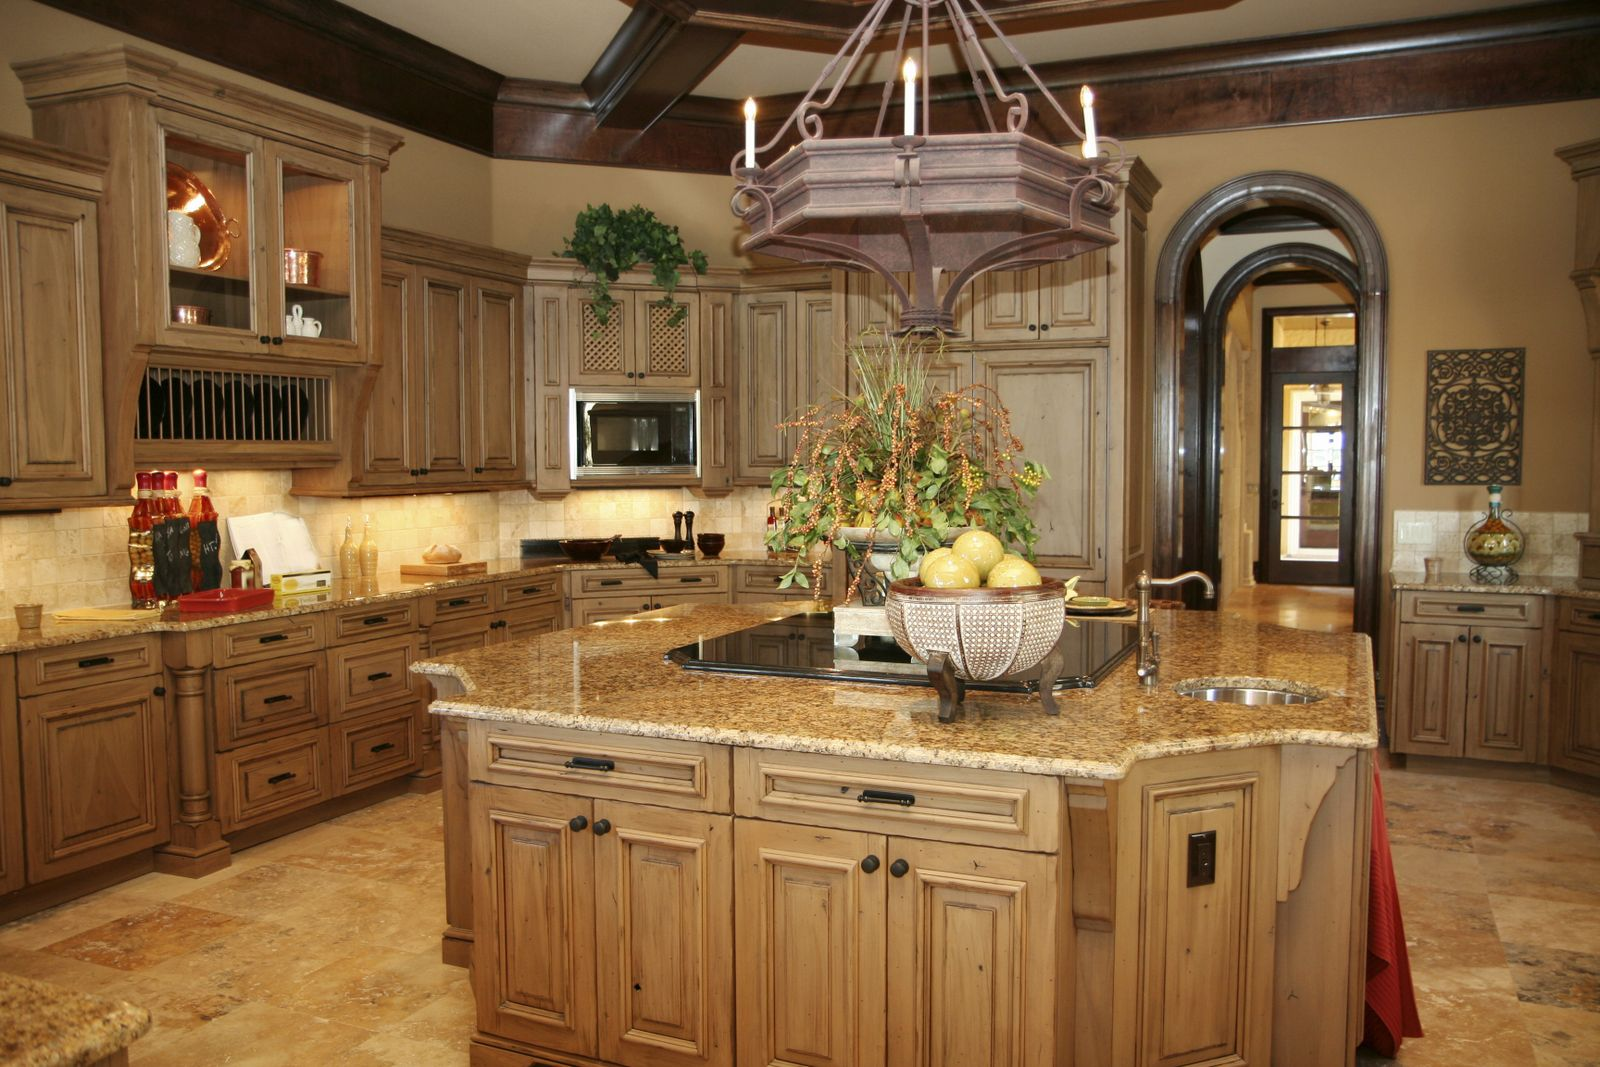 Kitchen with River Gold Granite – Luxurious Accent | HomesFeed on gold microwave, gold laminate countertops, gold kitchen appliances, gold walls, gold faucet, gold windows, gold kitchen accessories, gold fireplace,